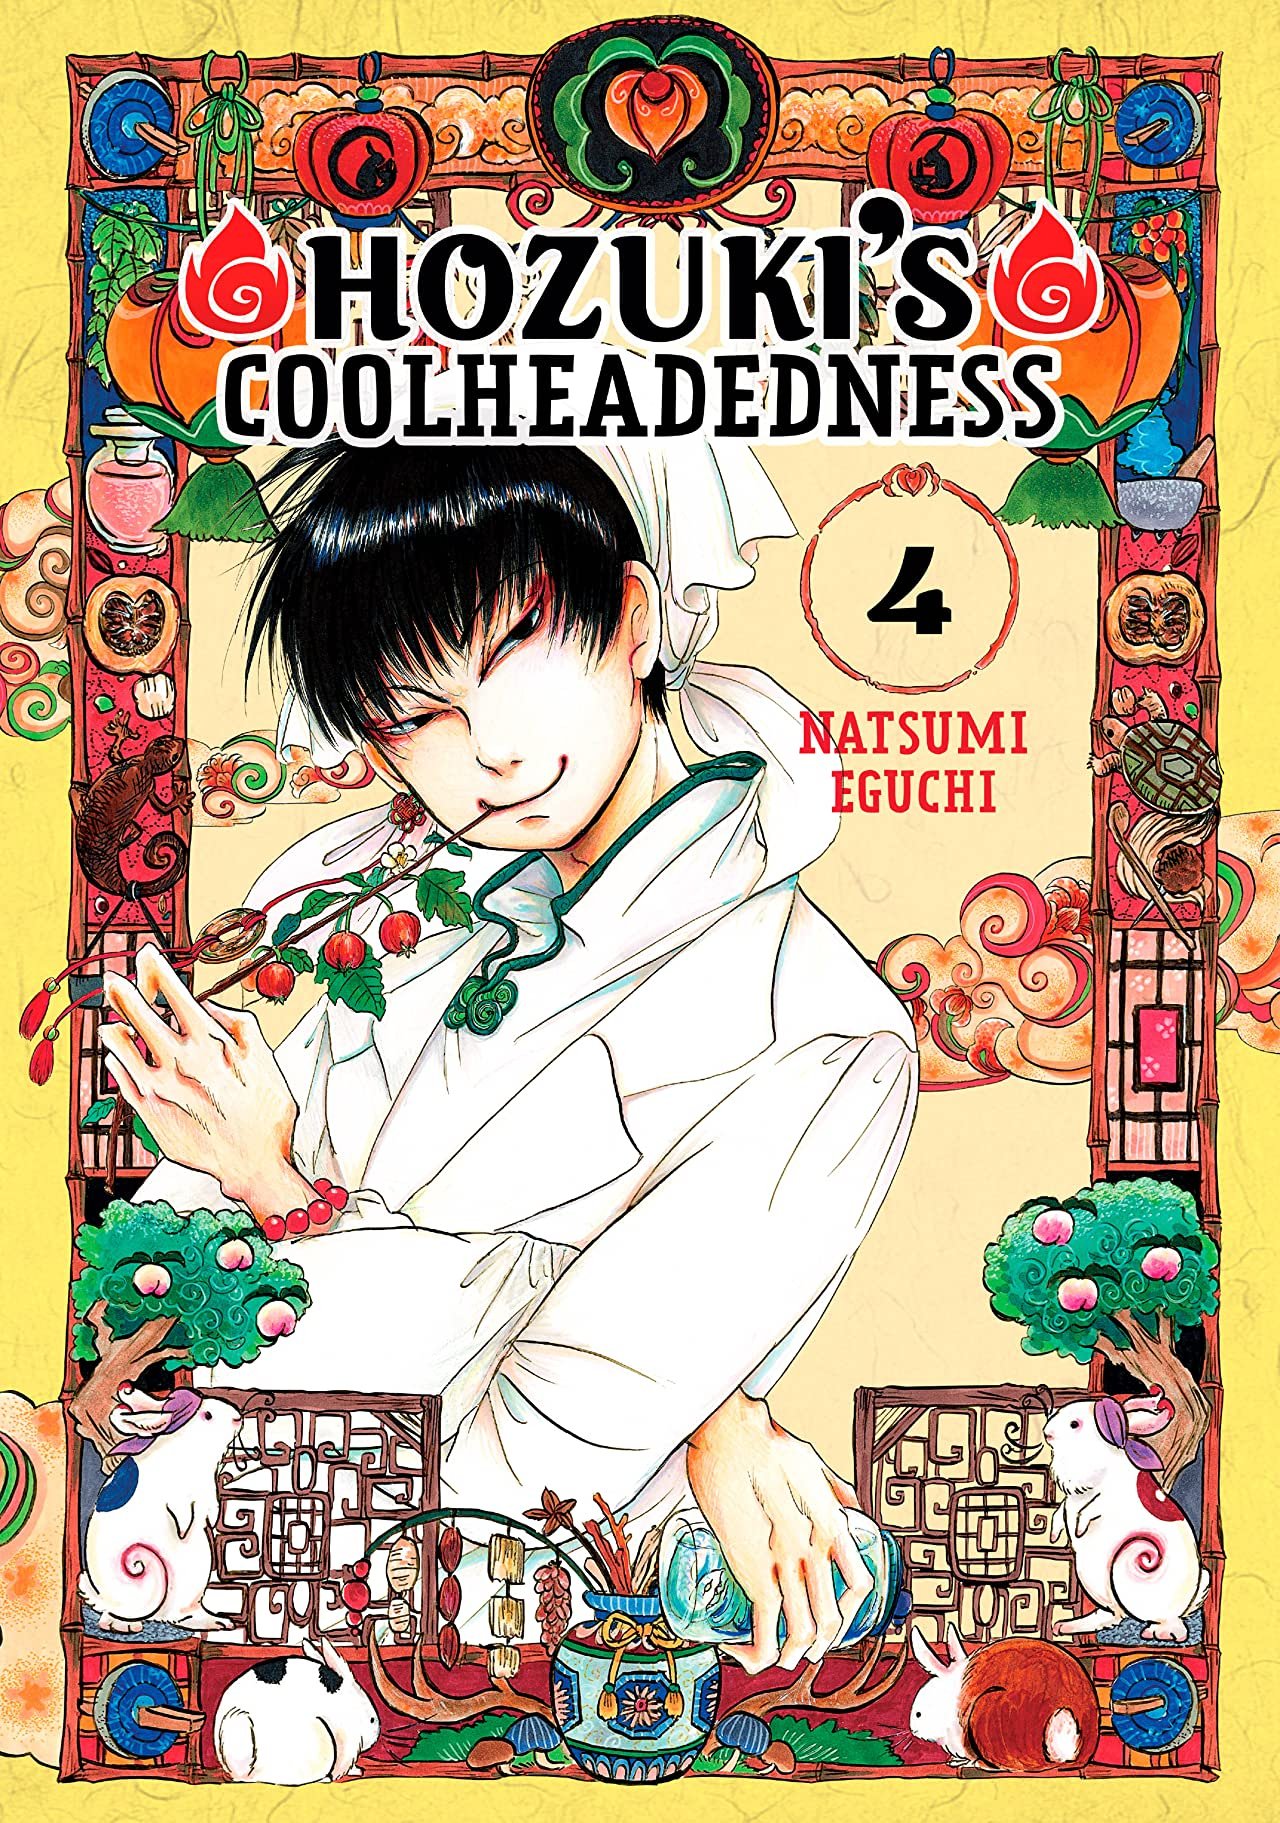 Hozuki's Coolheadedness Vol. 4